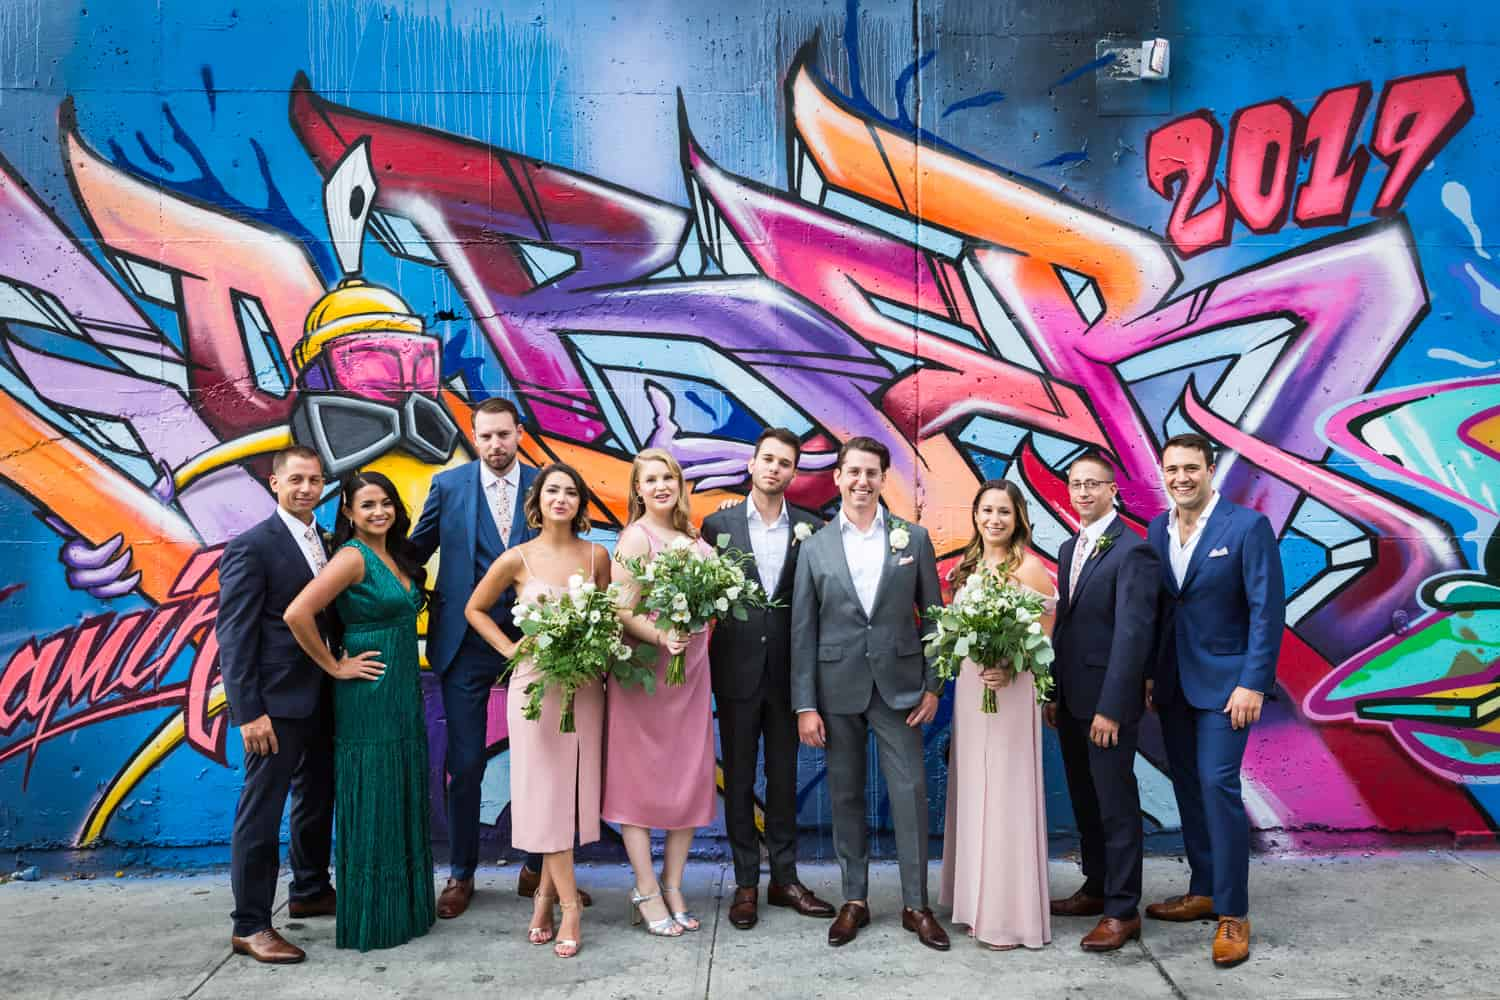 Bridal party in front of colorful mural in Greenpoint, Brooklyn